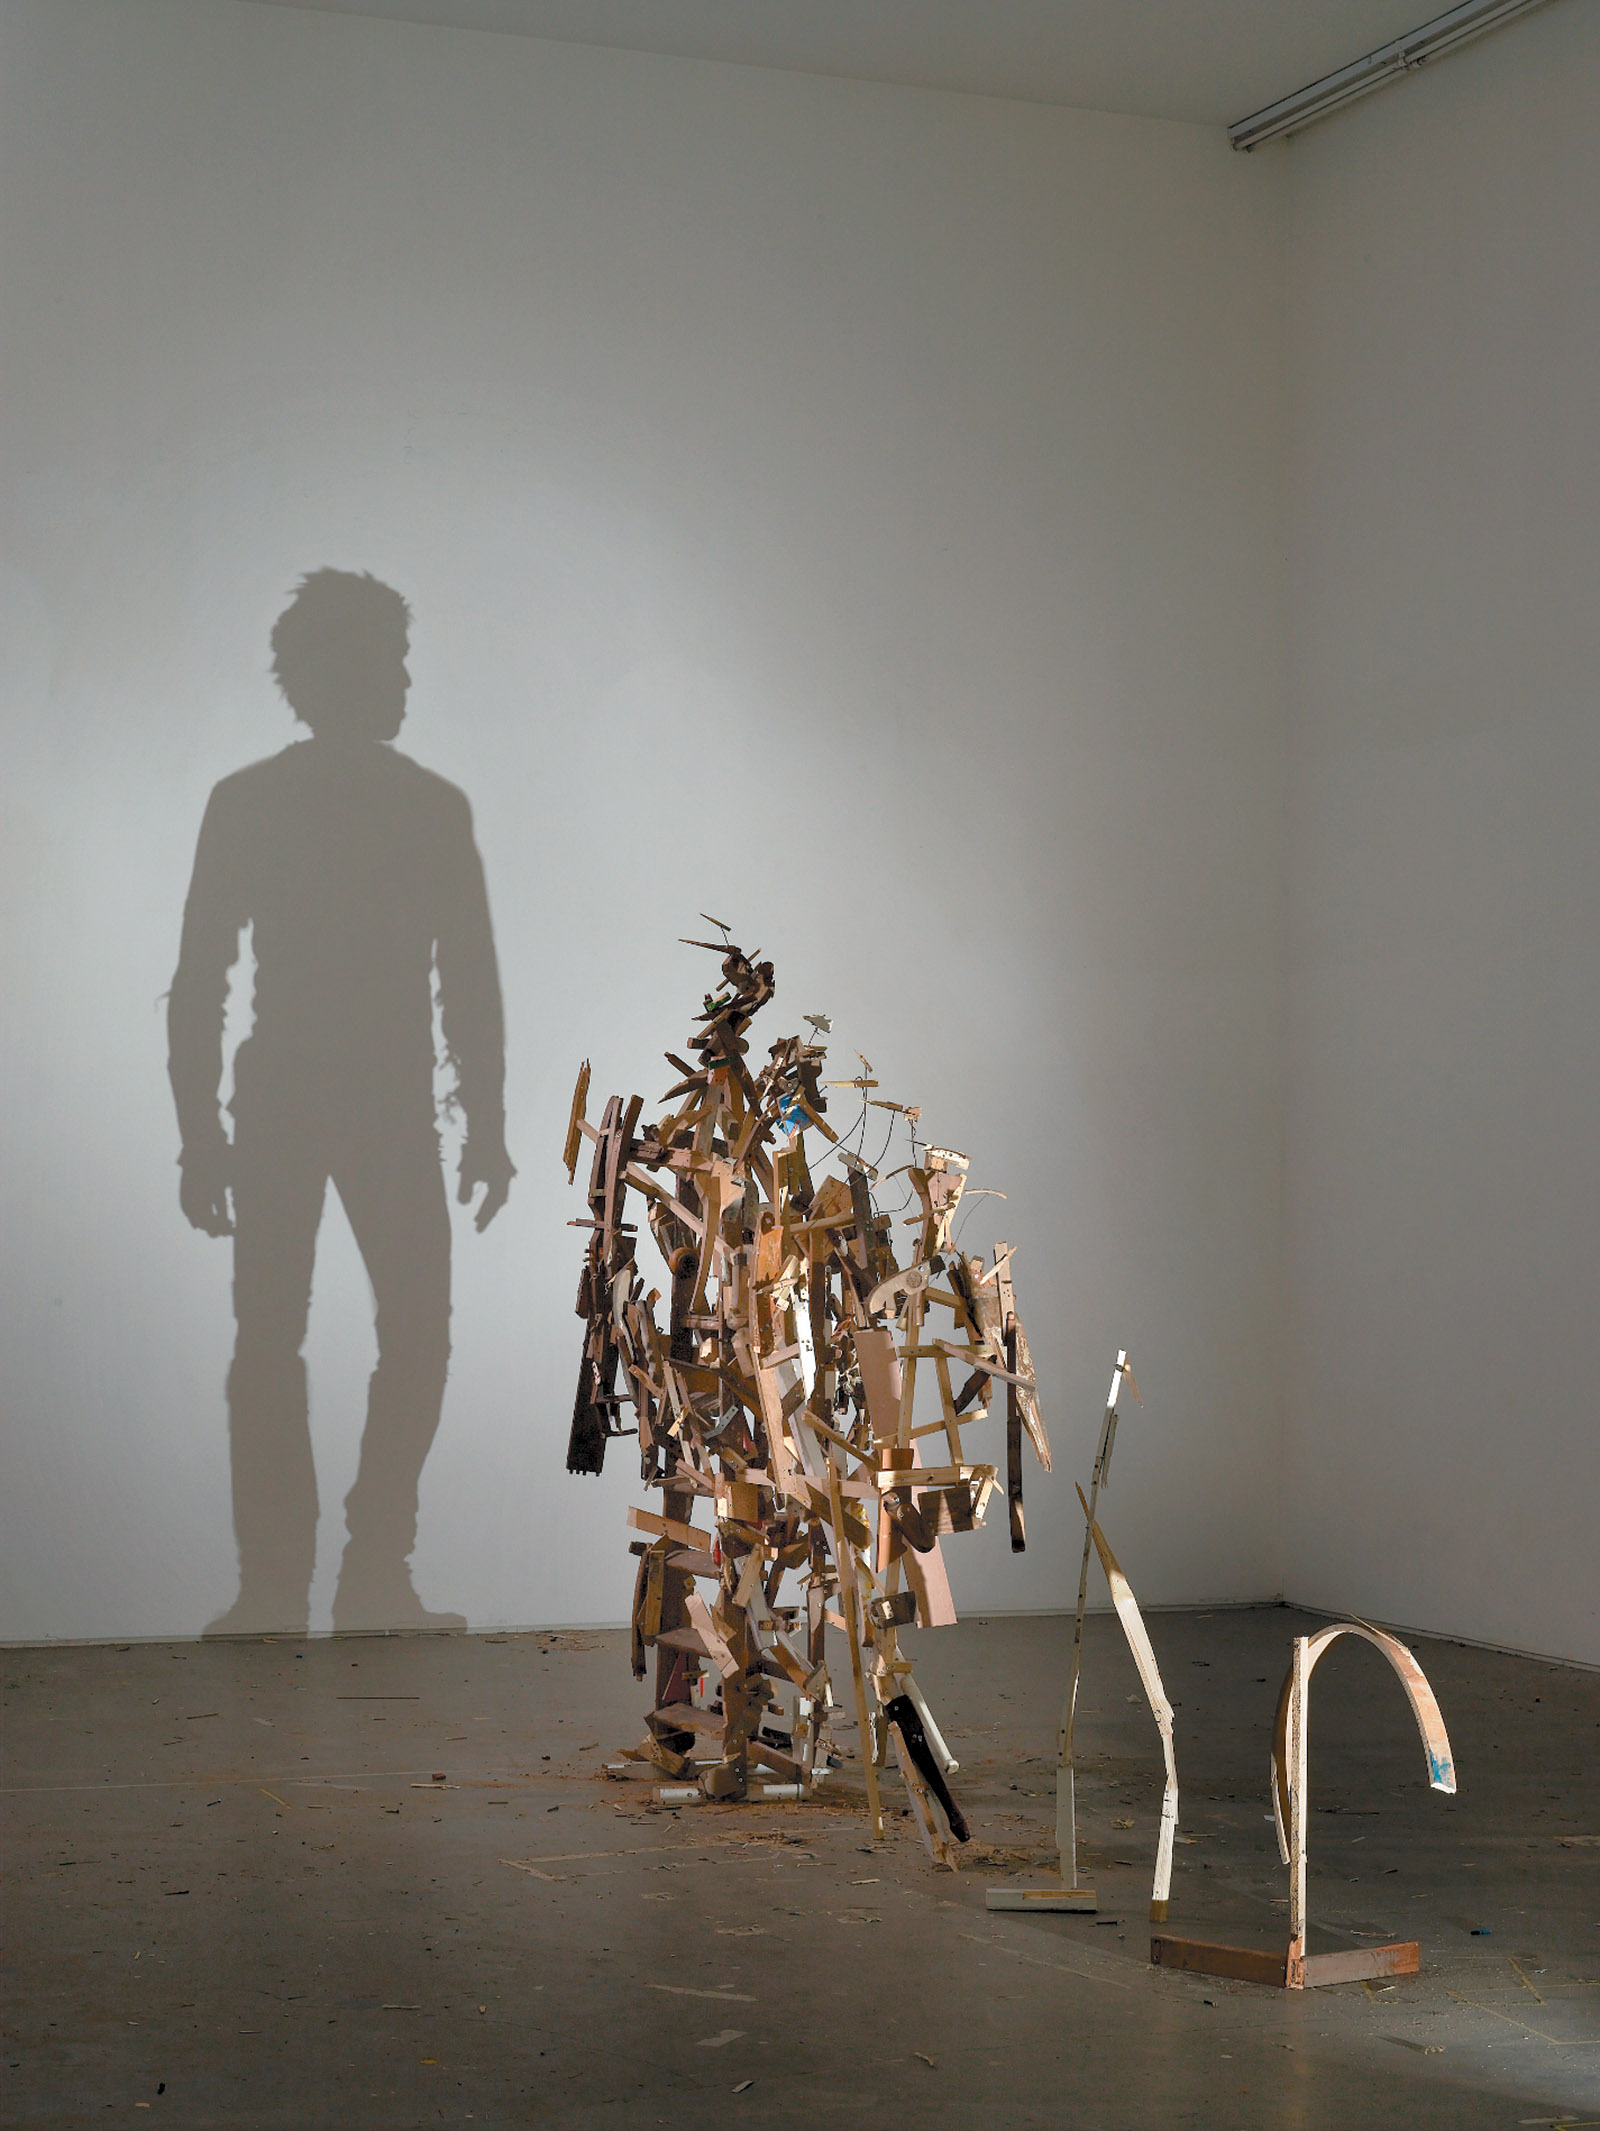 Tim Noble and Sue Webster: Self-Imposed Misery, 2010, a sculpture in which a two-dimensional human silhouette emerges from the projection of a more complicated three-dimensional array. Analogously, according to Jim Holt and others, the mystery of quantum nonlocality suggests that the three-dimensional space we experience might be a projection of a higher-dimensional reality in which the concept of distance is radically different.